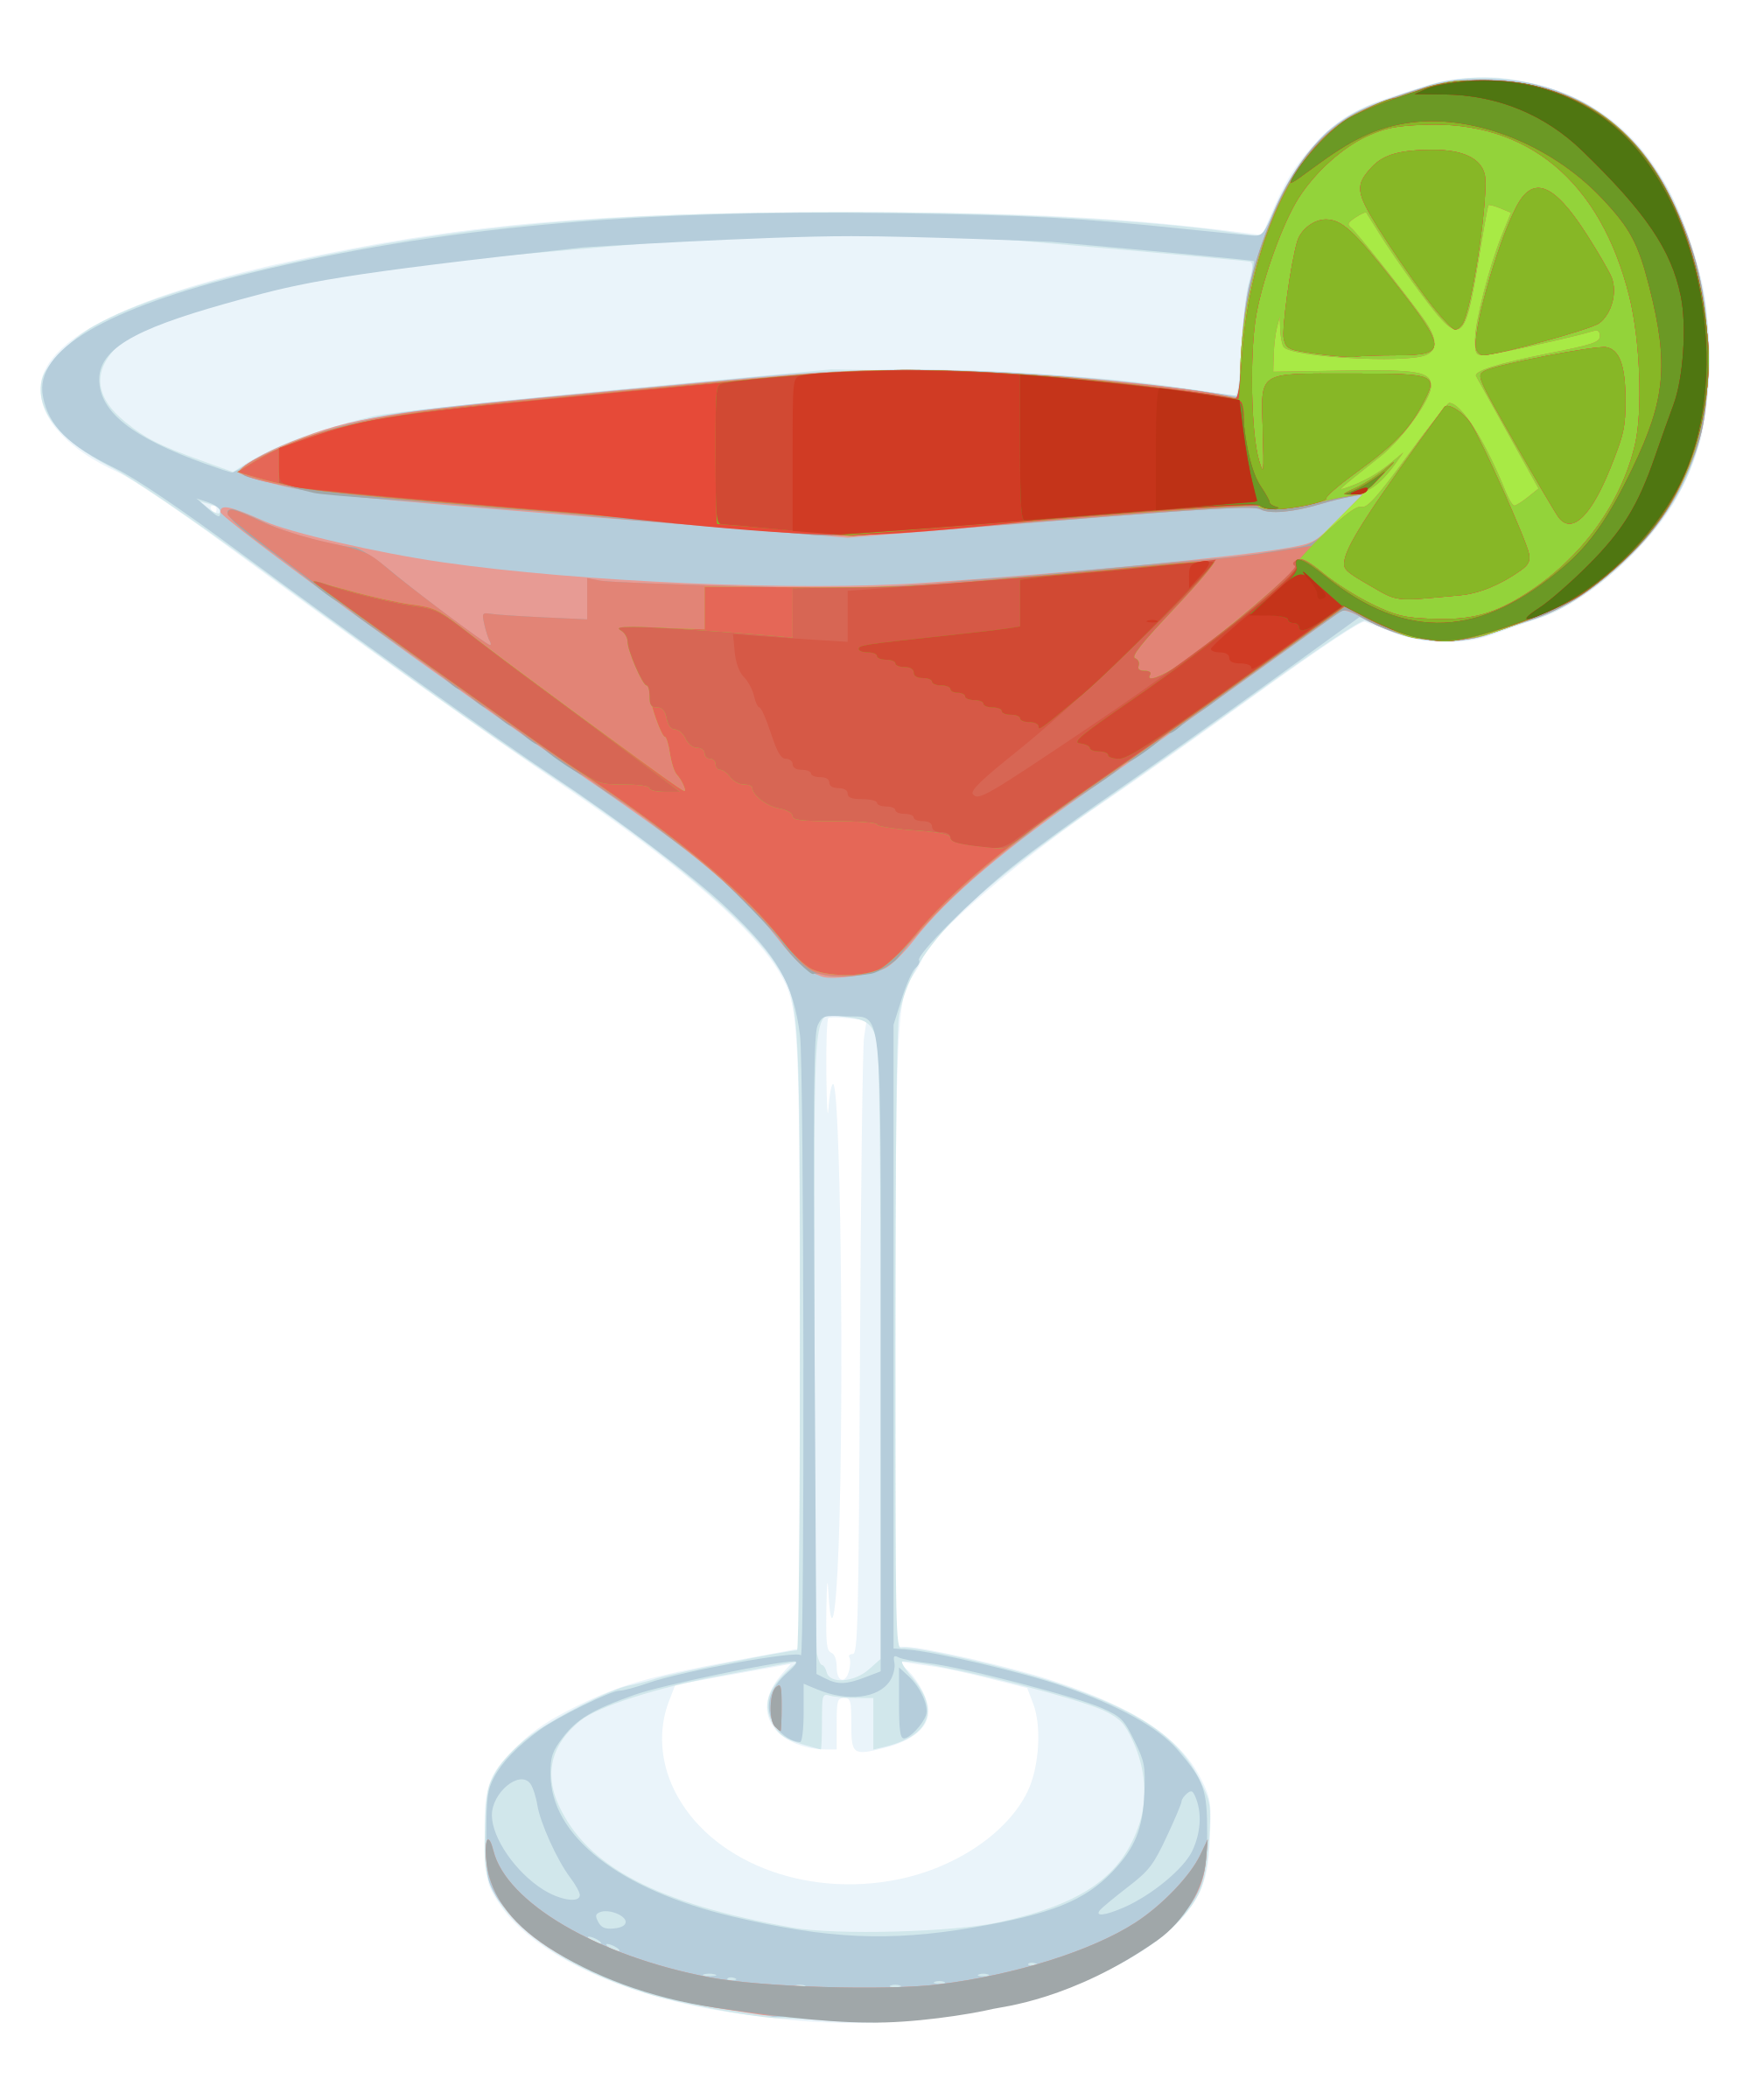 collection of cocktail. Cocktails clipart cute